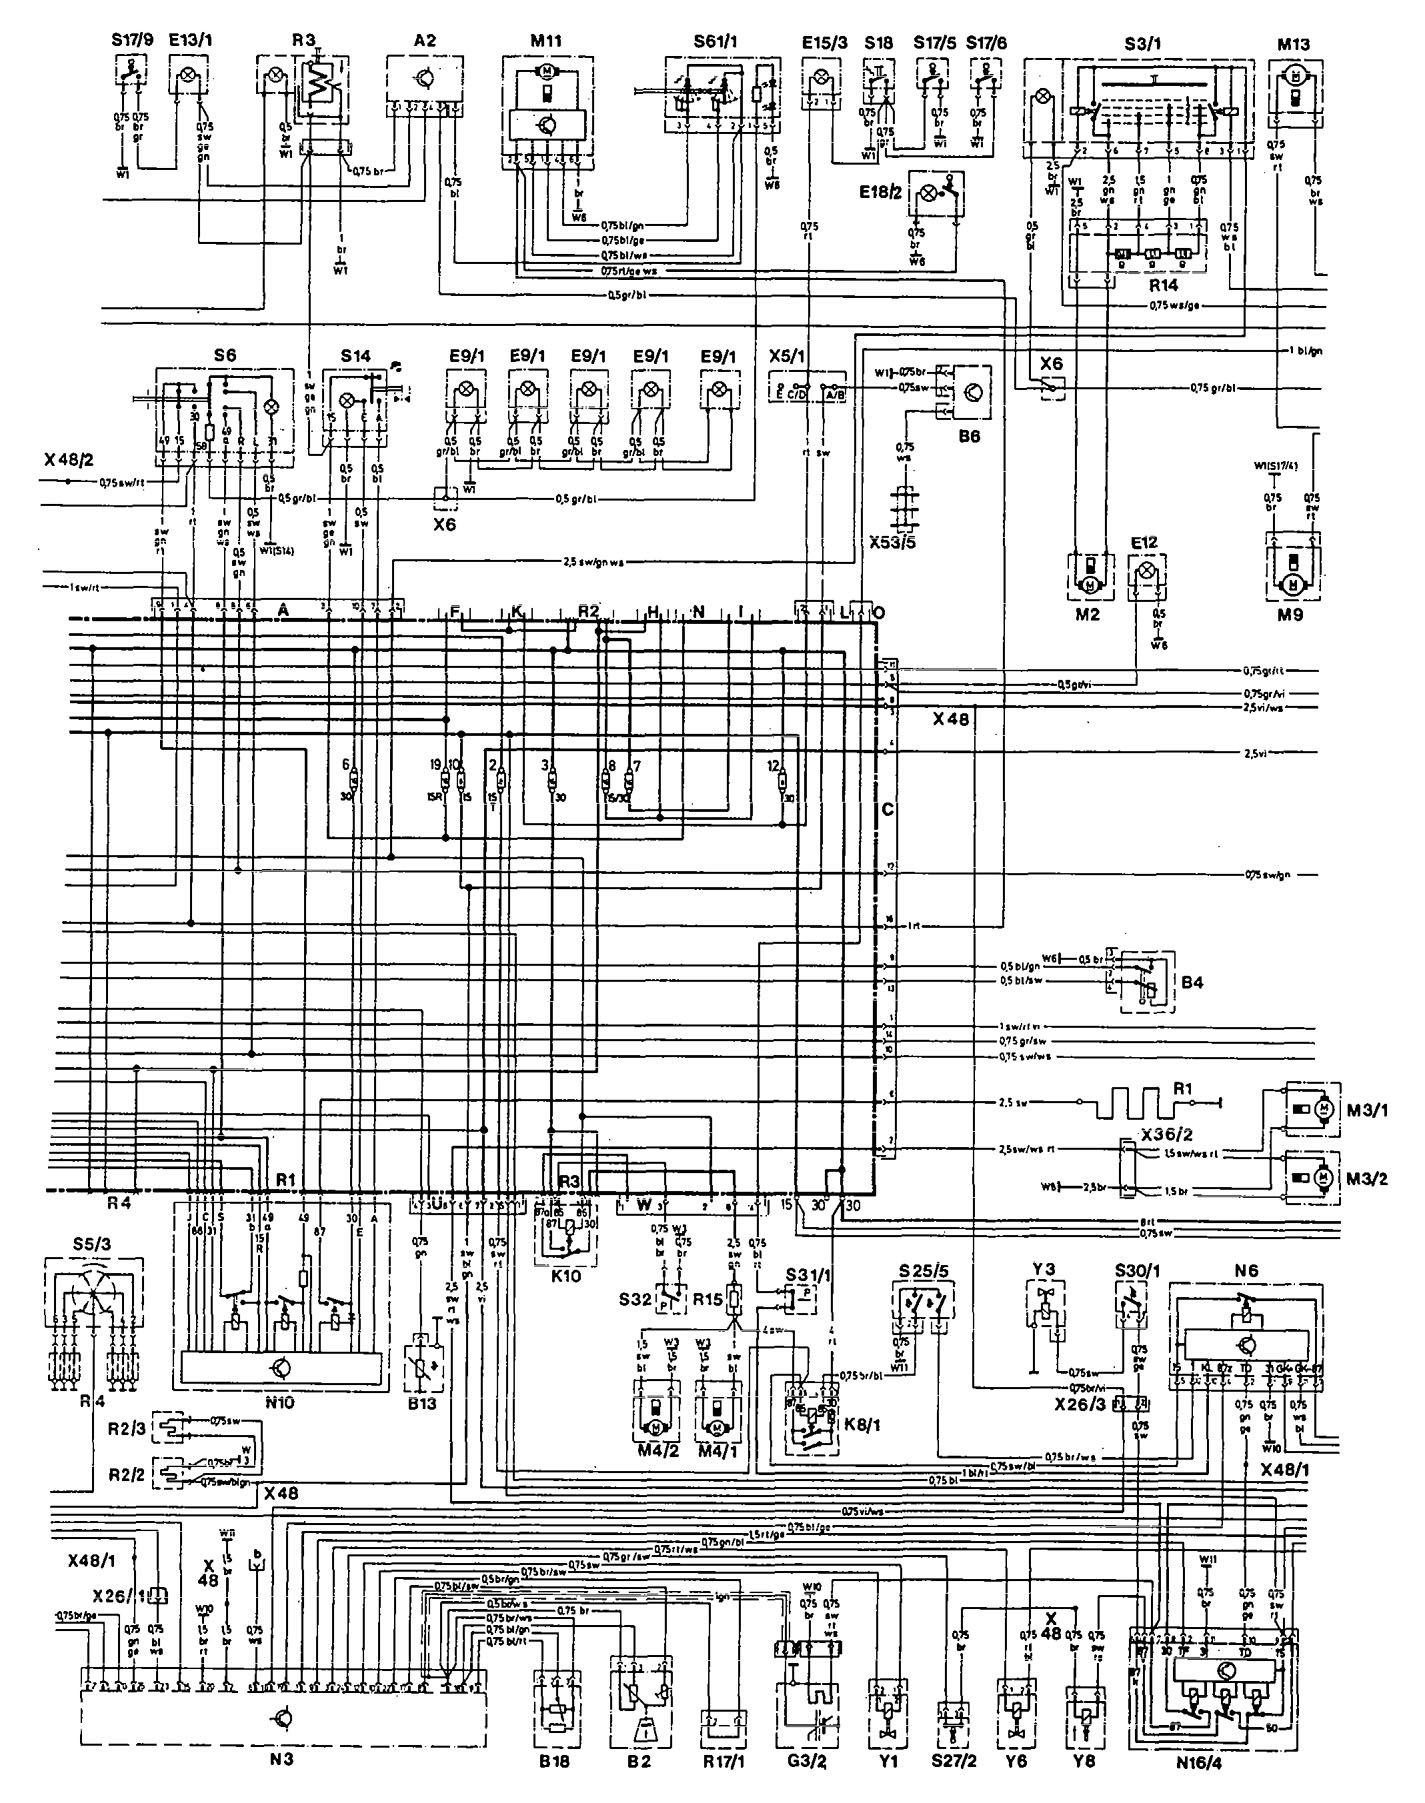 Mercedes Benz 190e 1993 Wiring Diagrams Starting Carknowledge 93 Gmc Safari Fuse